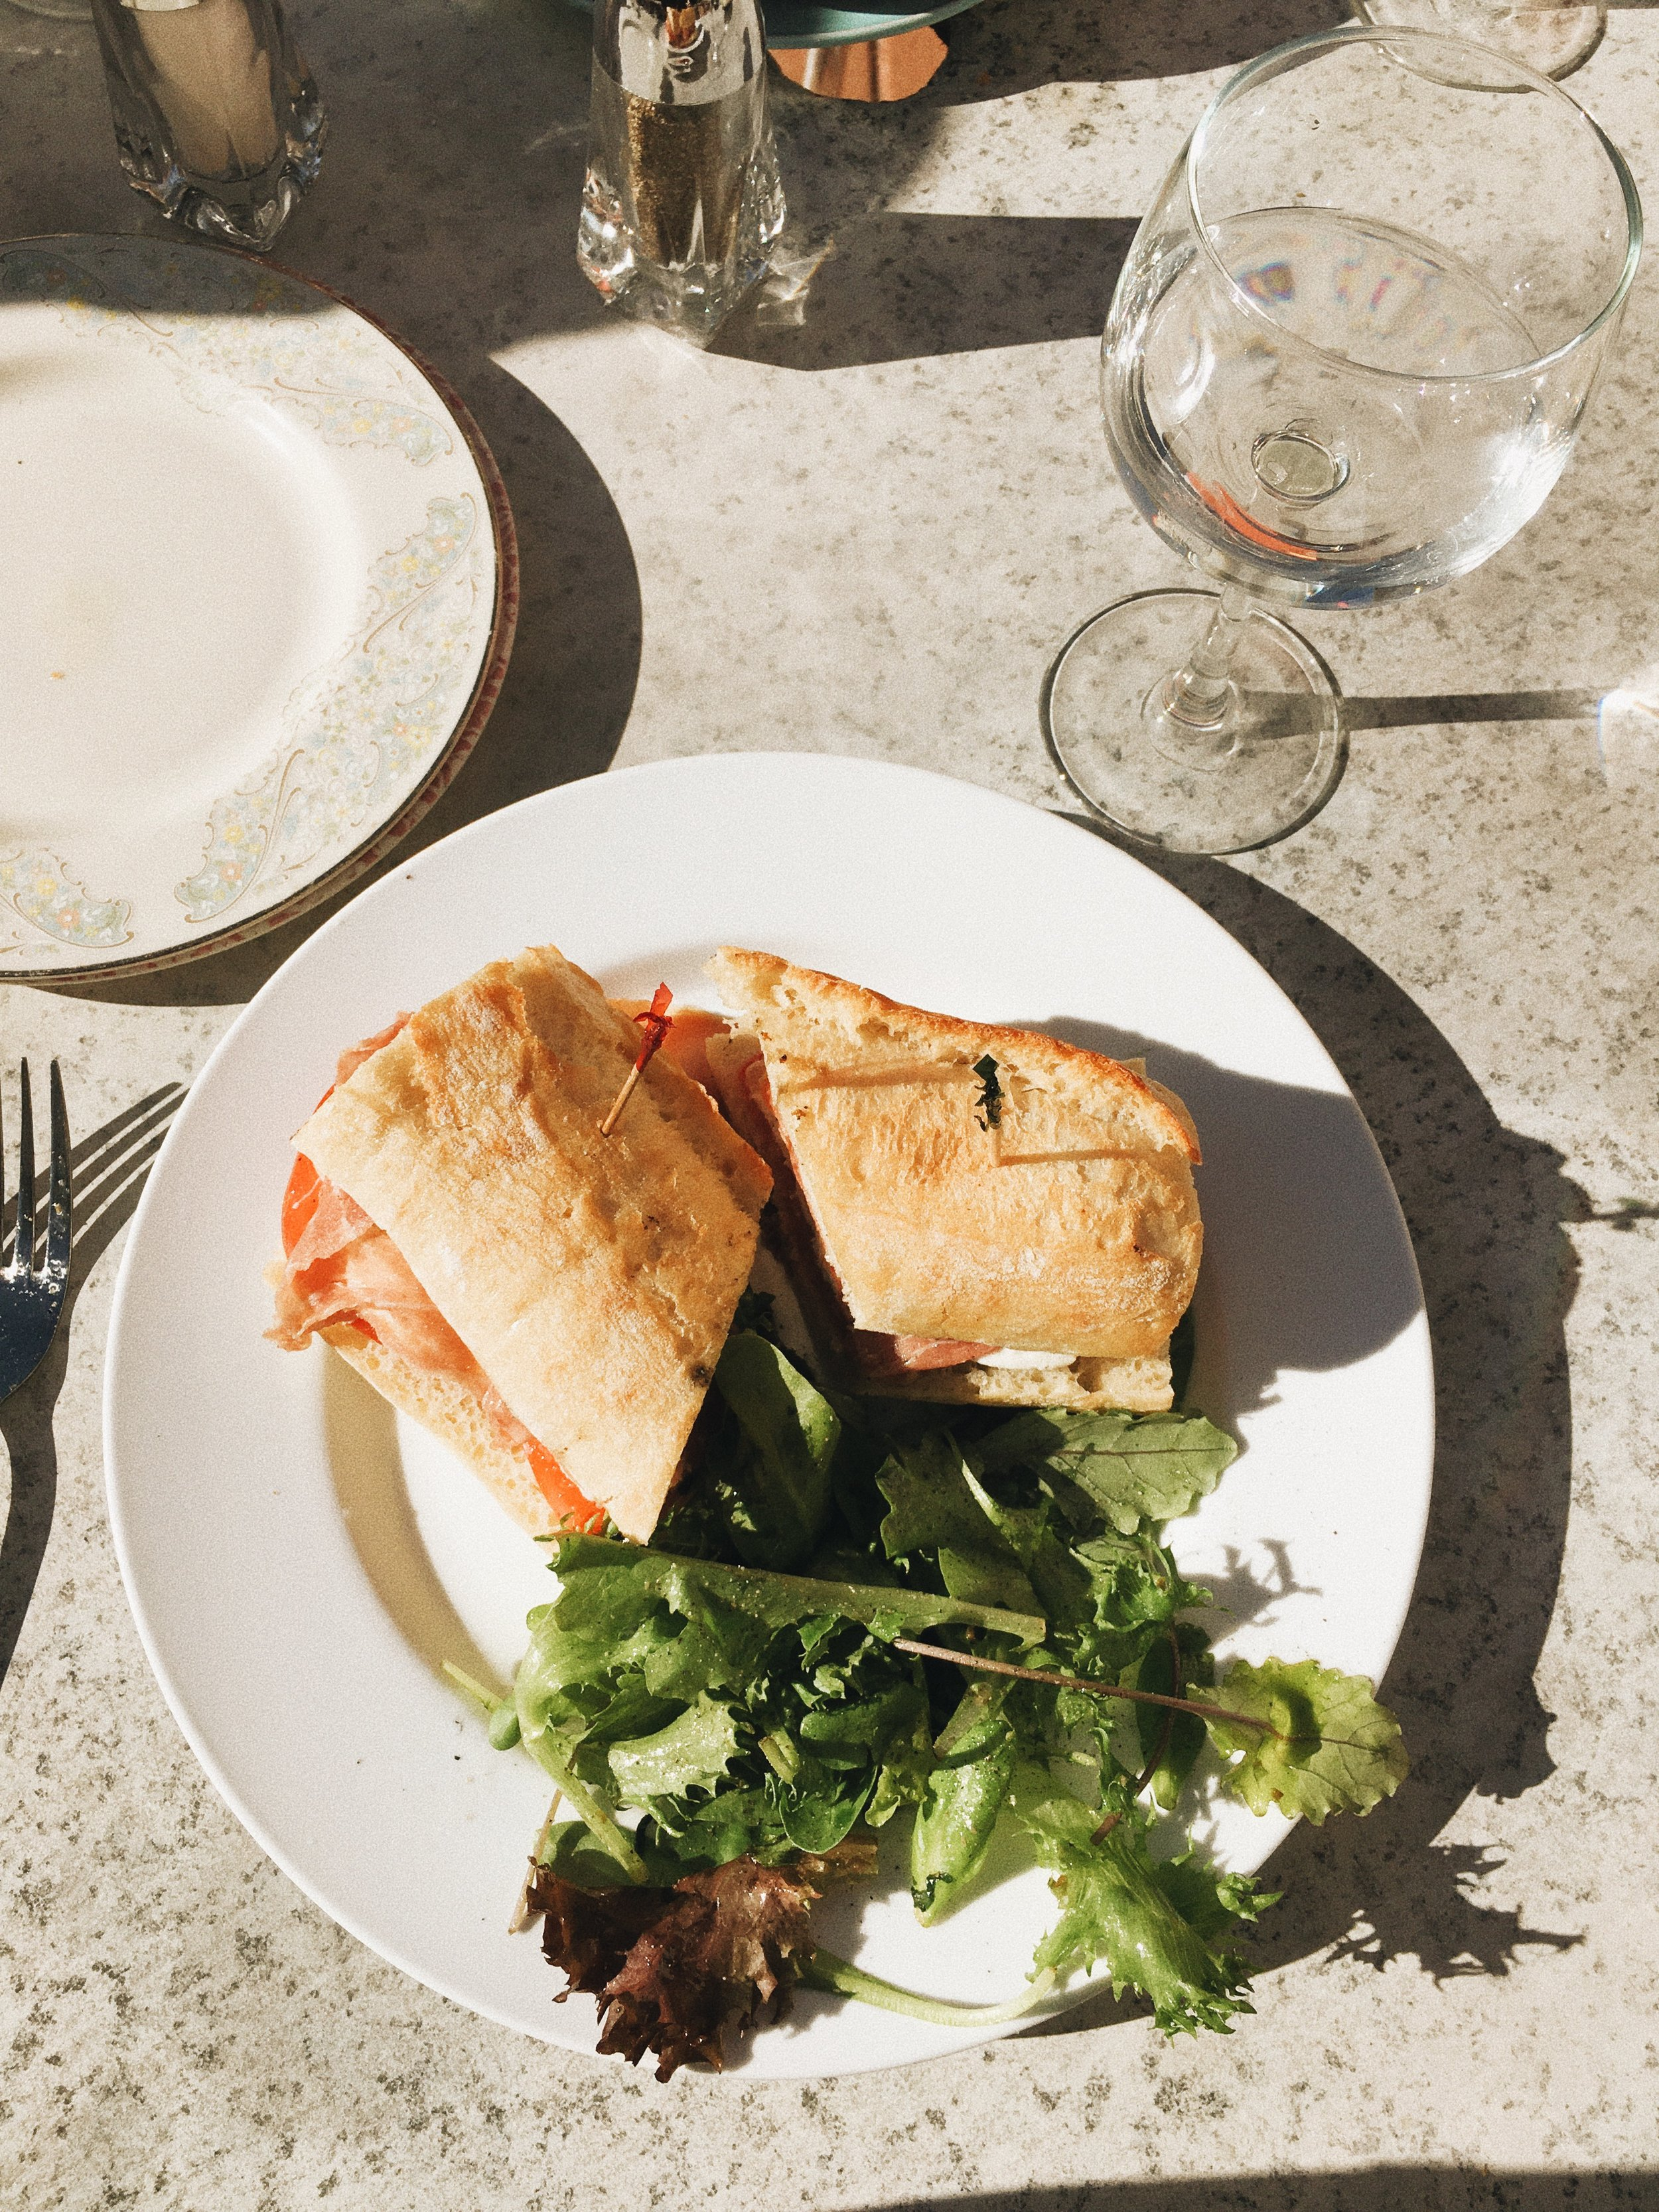 along 5th ave is a place called Bellini. I was walking through the streets as a local art show was going on and sat down for a bite of lunch. the fresh simple salads were delicious and the special was this prosciutto sandwich, the bestttt!